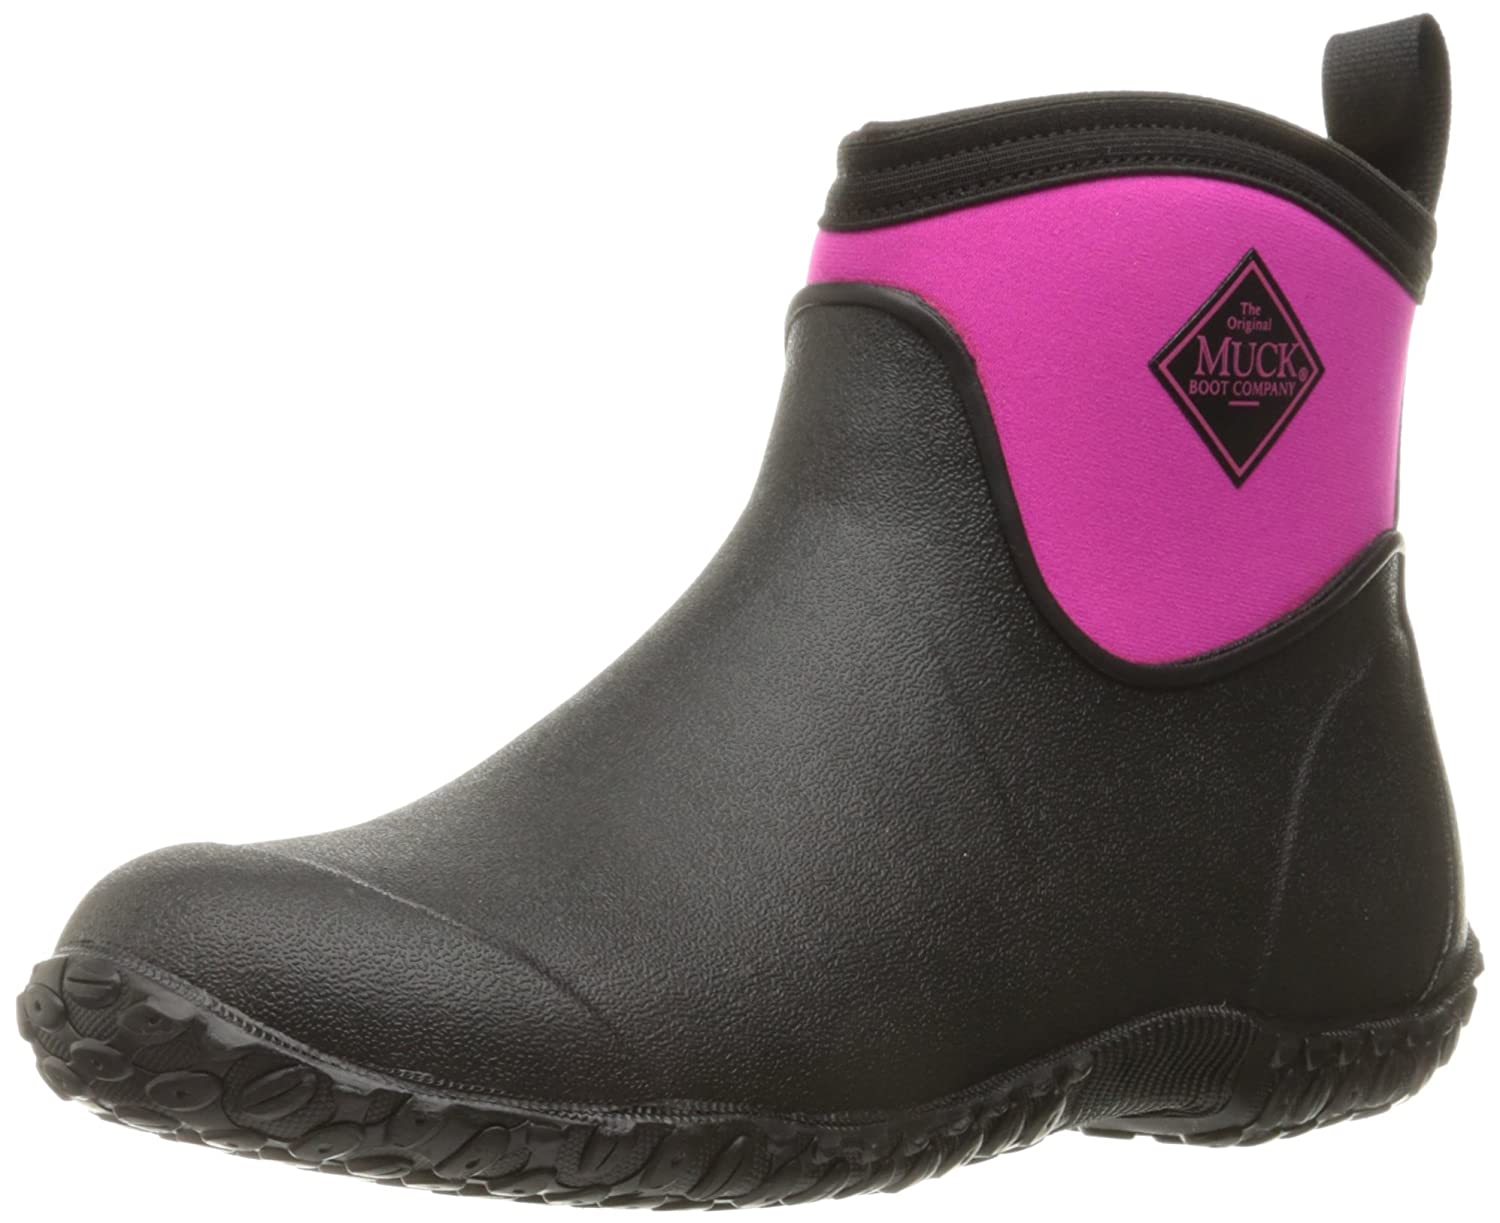 Muck Boot Women's Muckster 2 Ankle Snow Boot B01B6OSBO0 5 B(M) US|Black/Pink